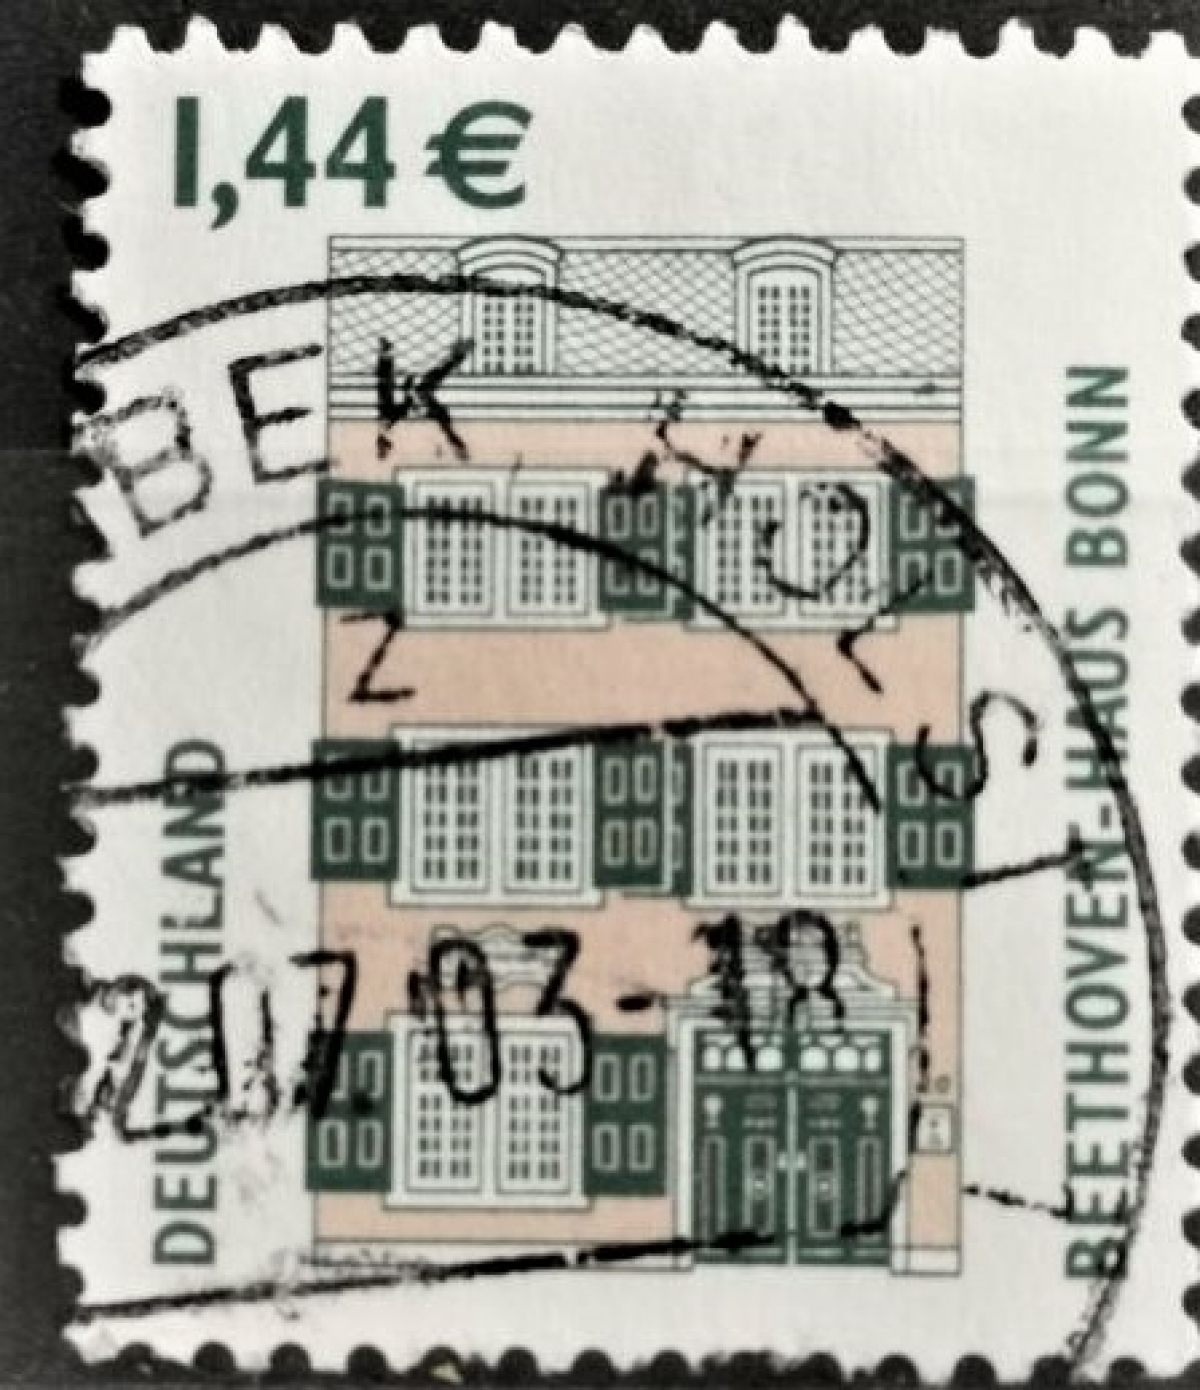 2003 Beethoven Haus Berlin MiNr: 2306A